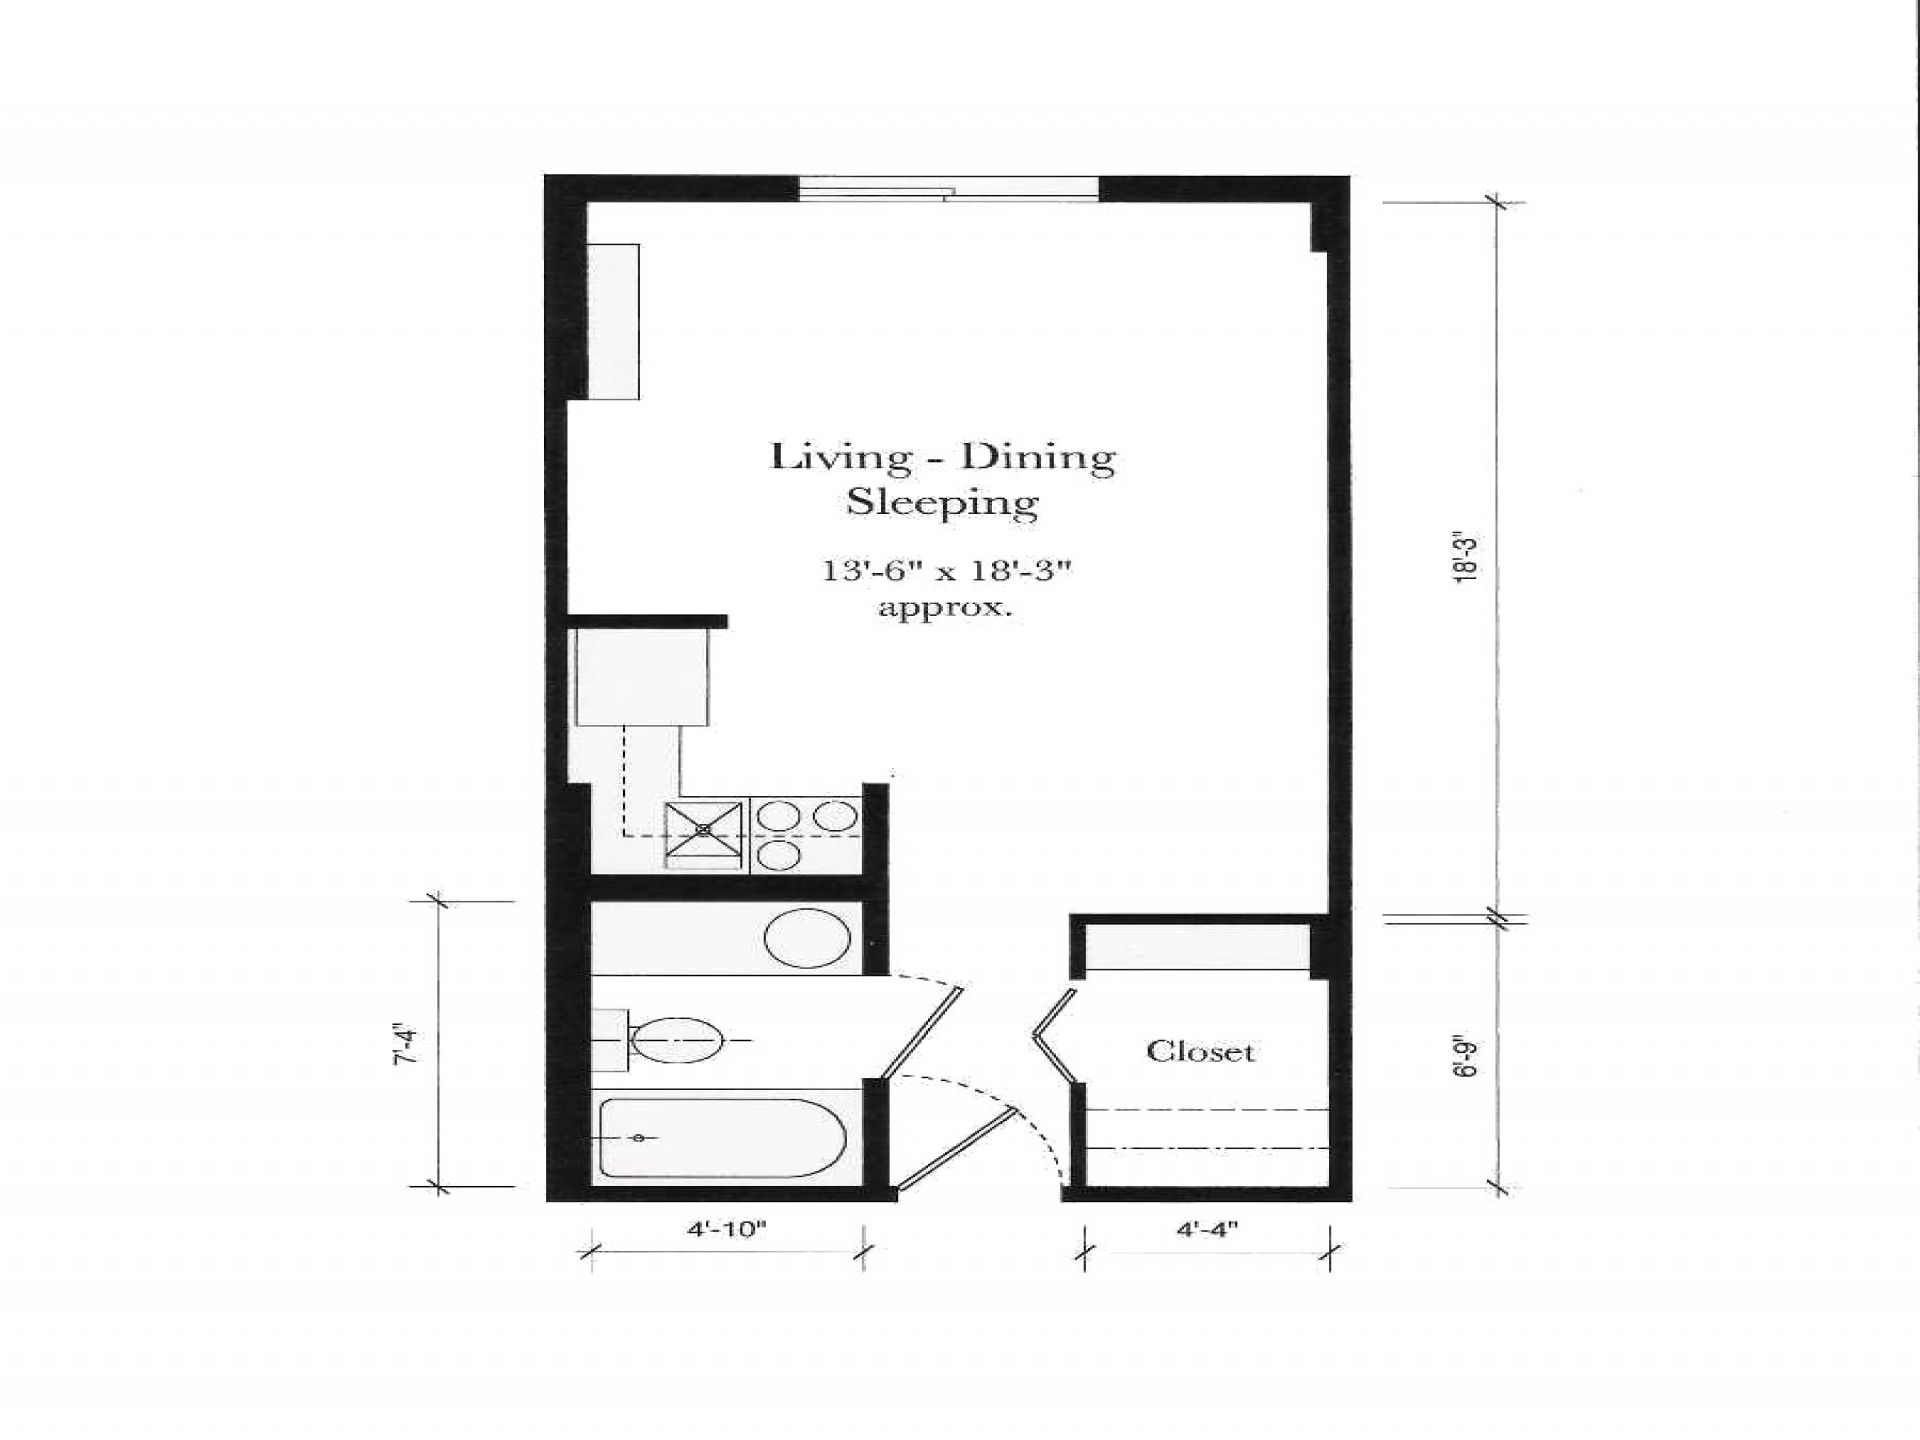 Apartment studio floor plan simple floor design studio for Simple apartment plans